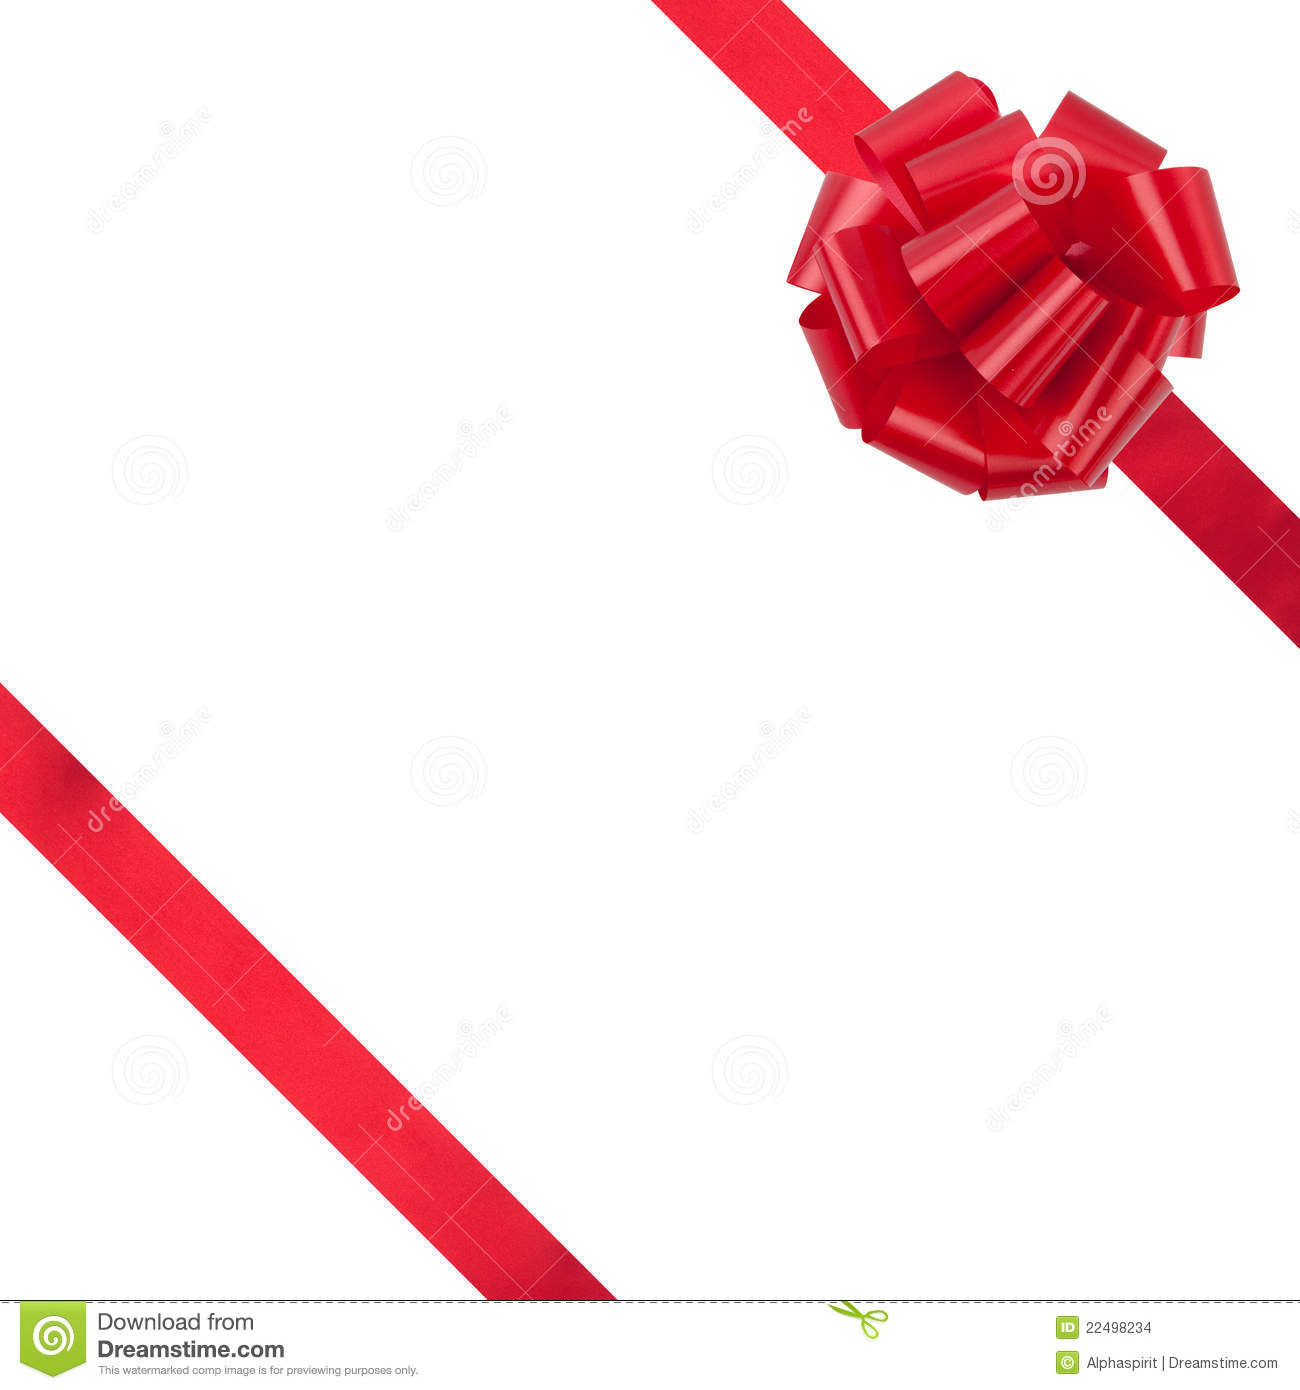 More similar stock images of ` Present with ribbon and bow `